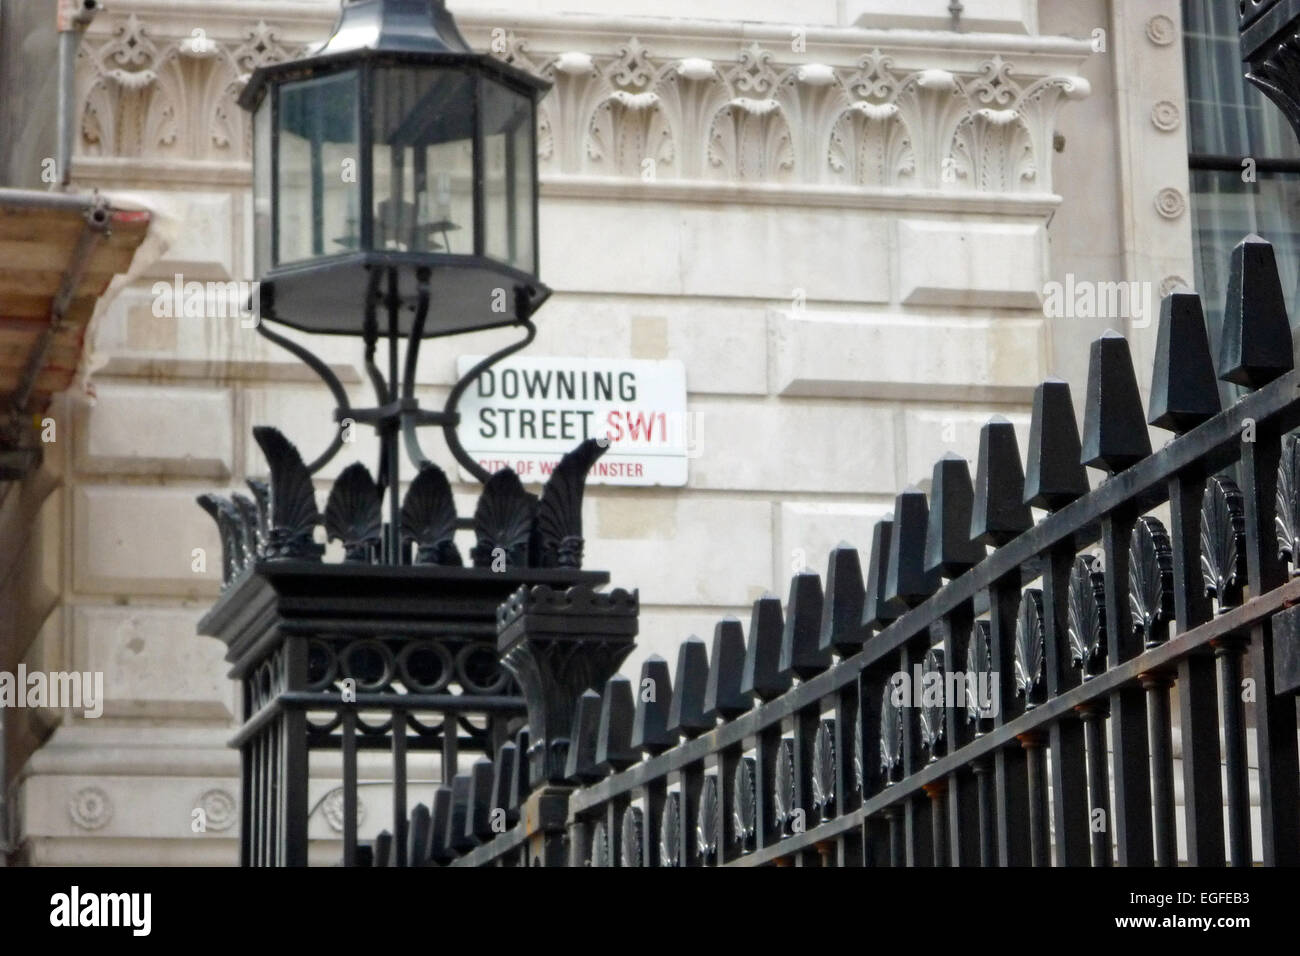 Street sign and railings outside Downing Street, London, UK, the home of the British Prime Minister - Stock Image